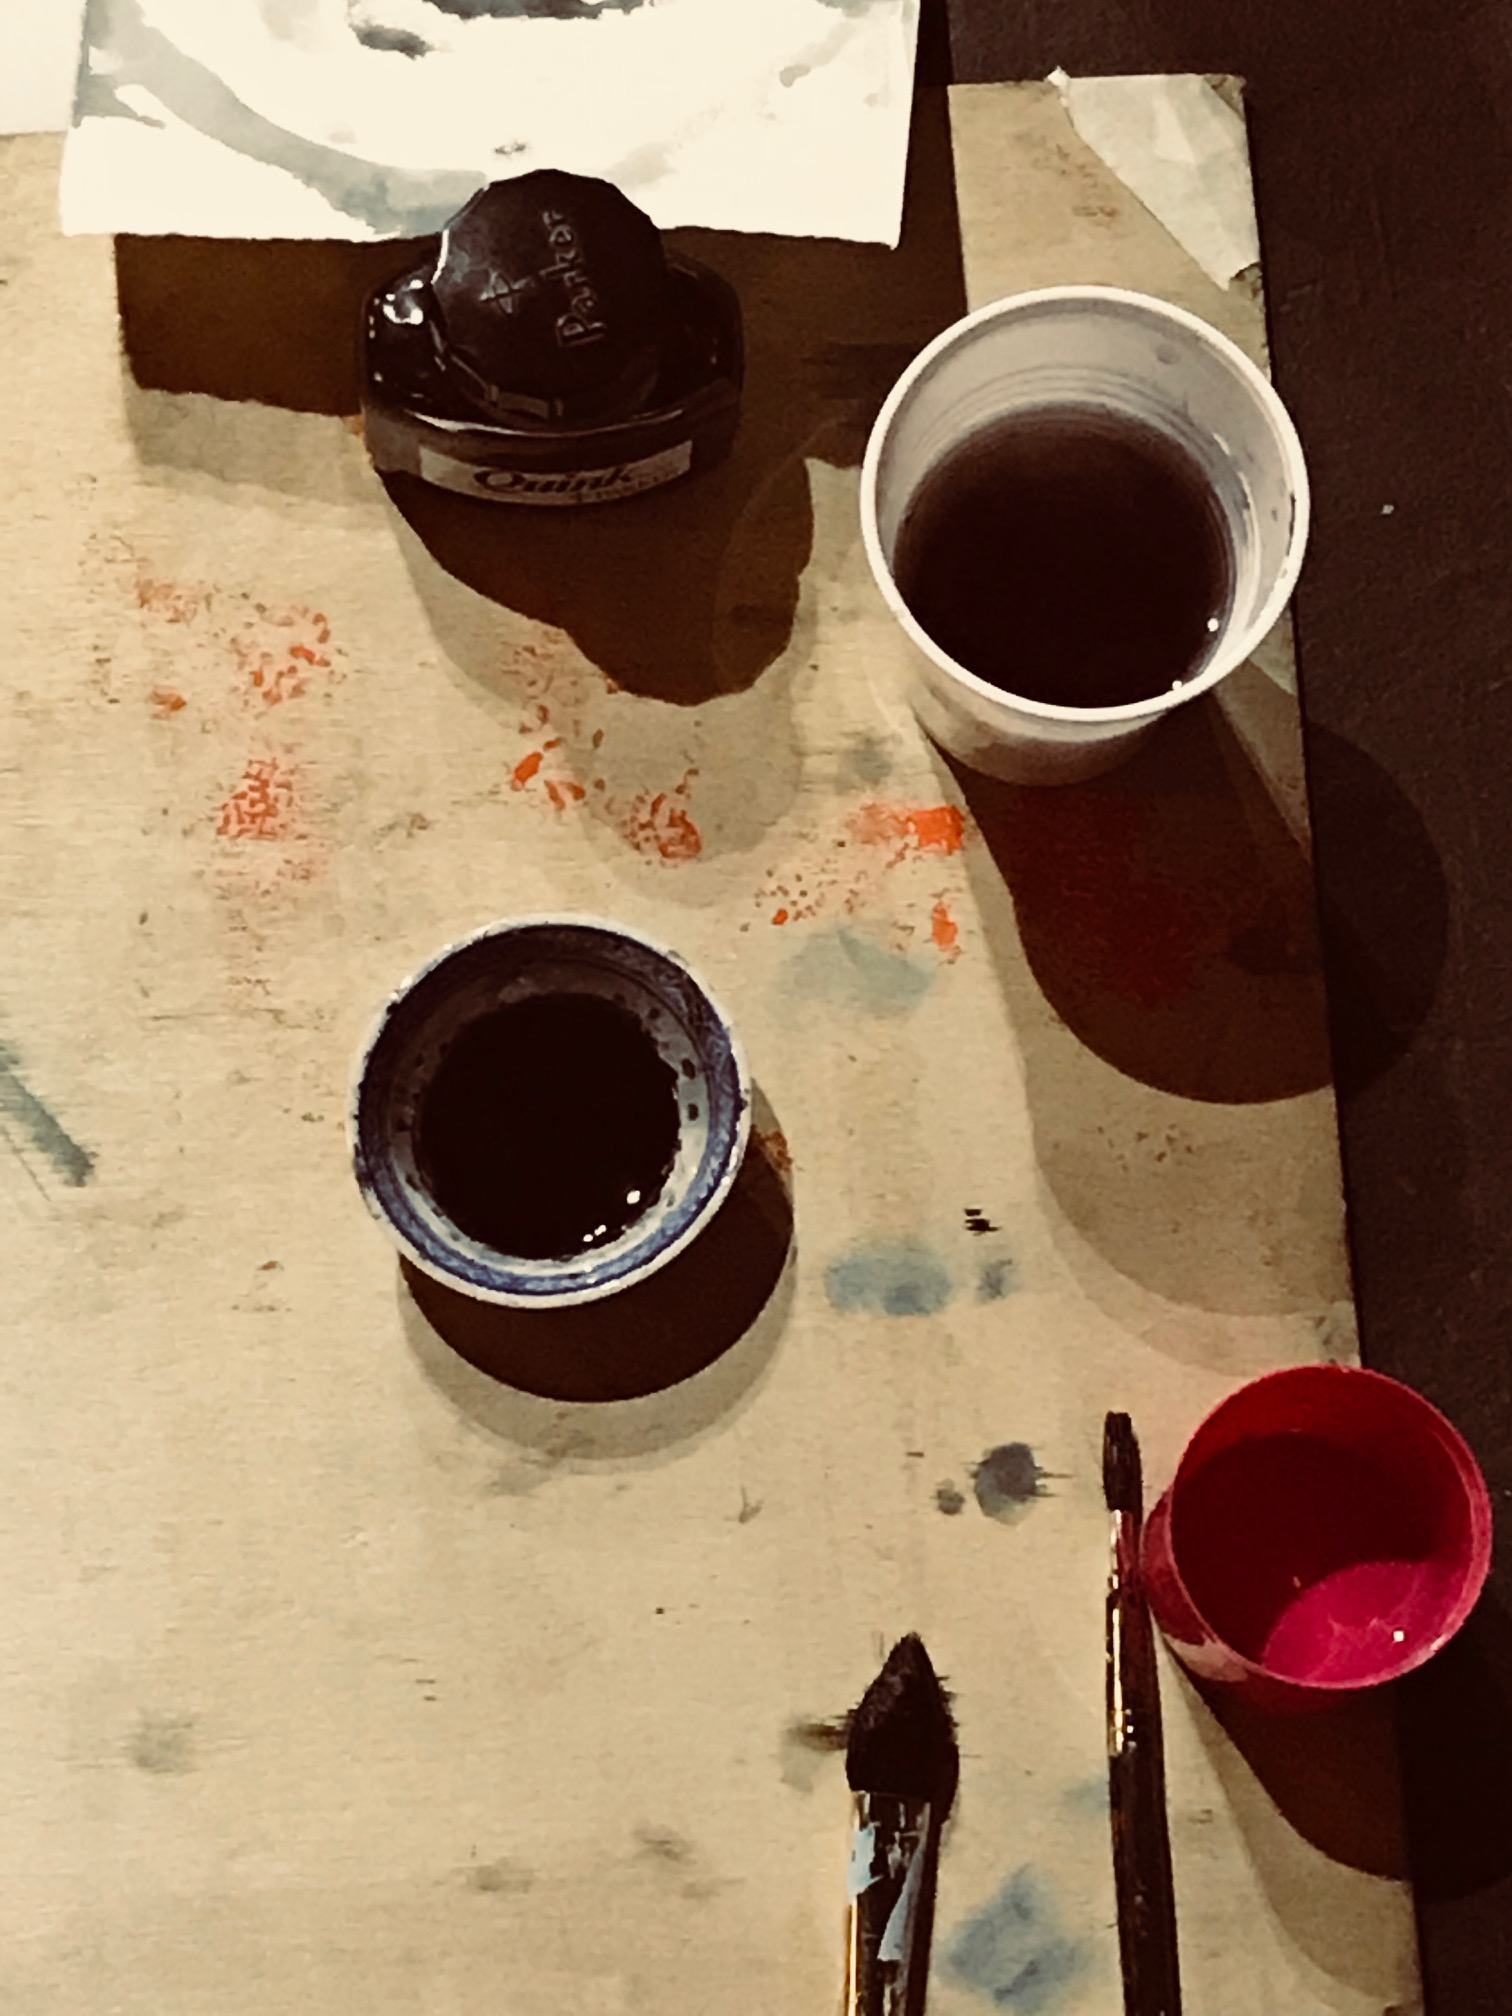 pots of ink and paintbrushes